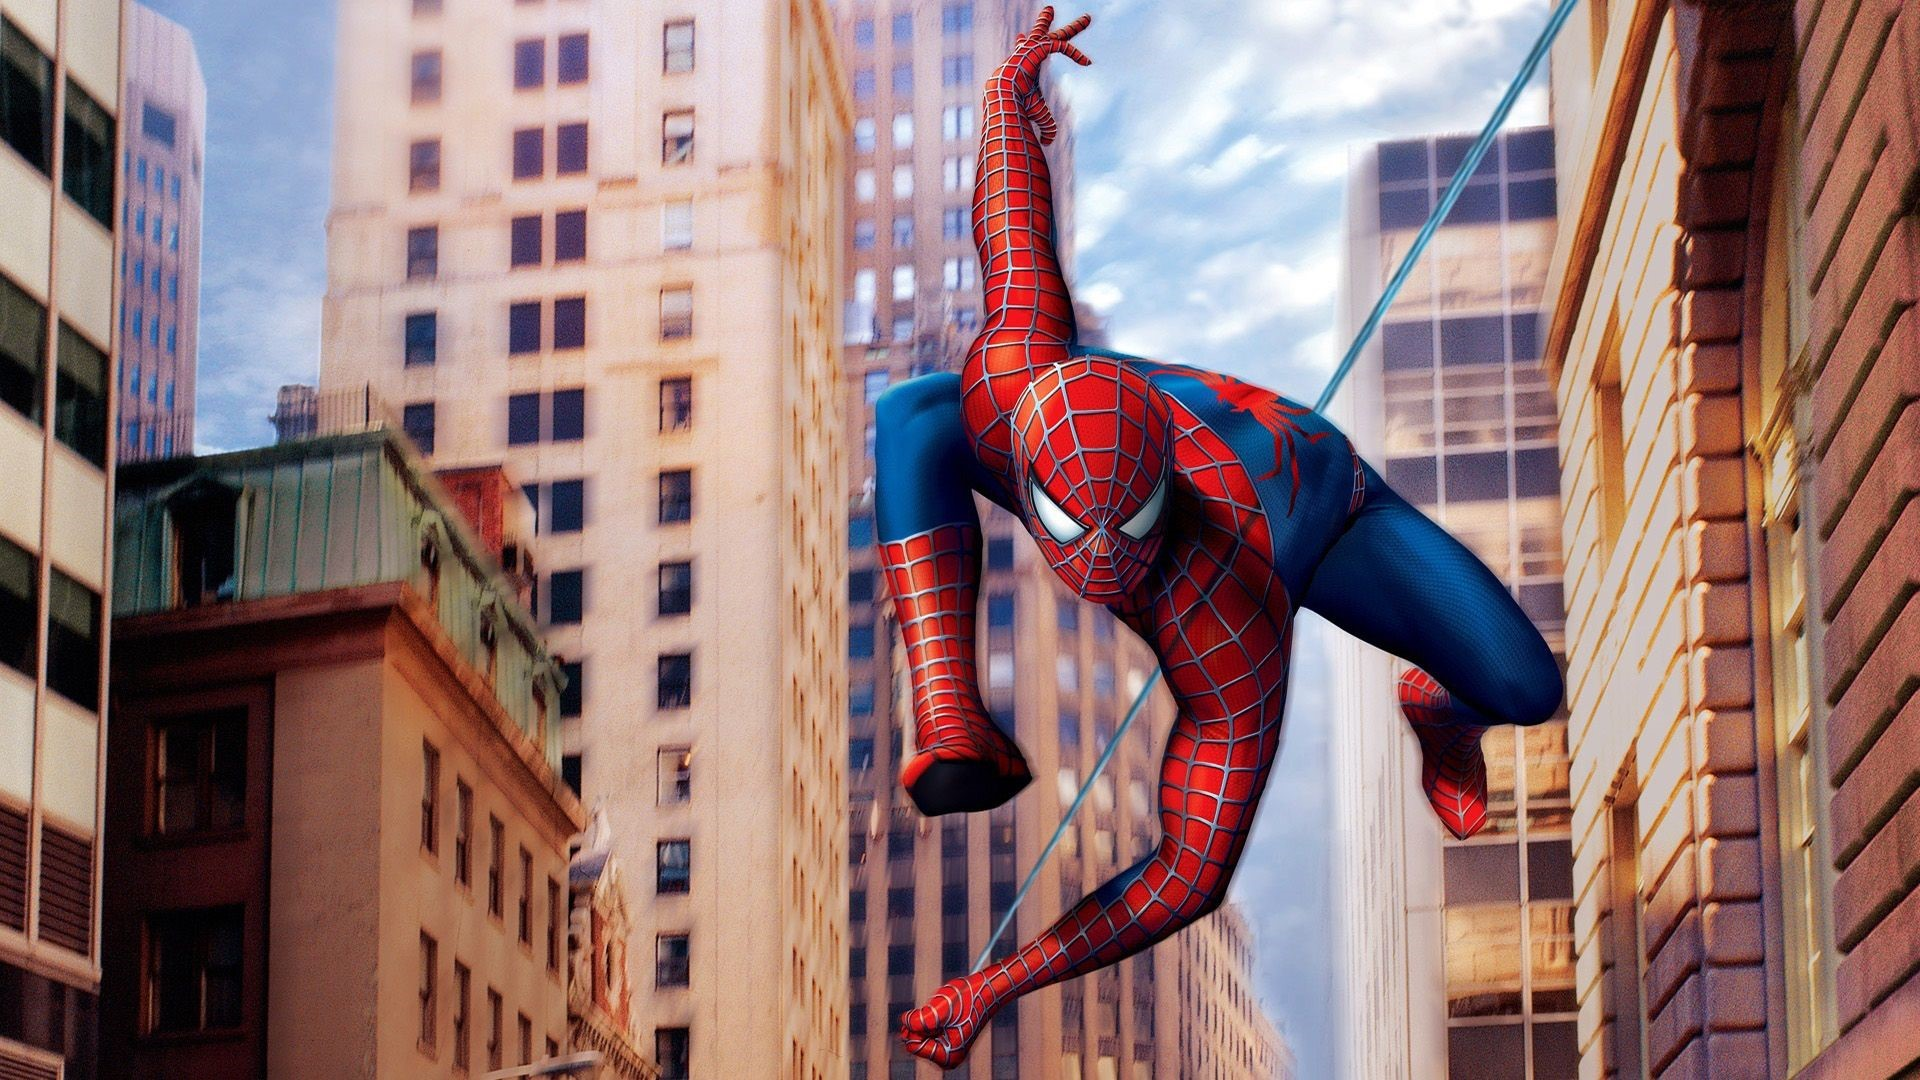 Spider Man Screensaver